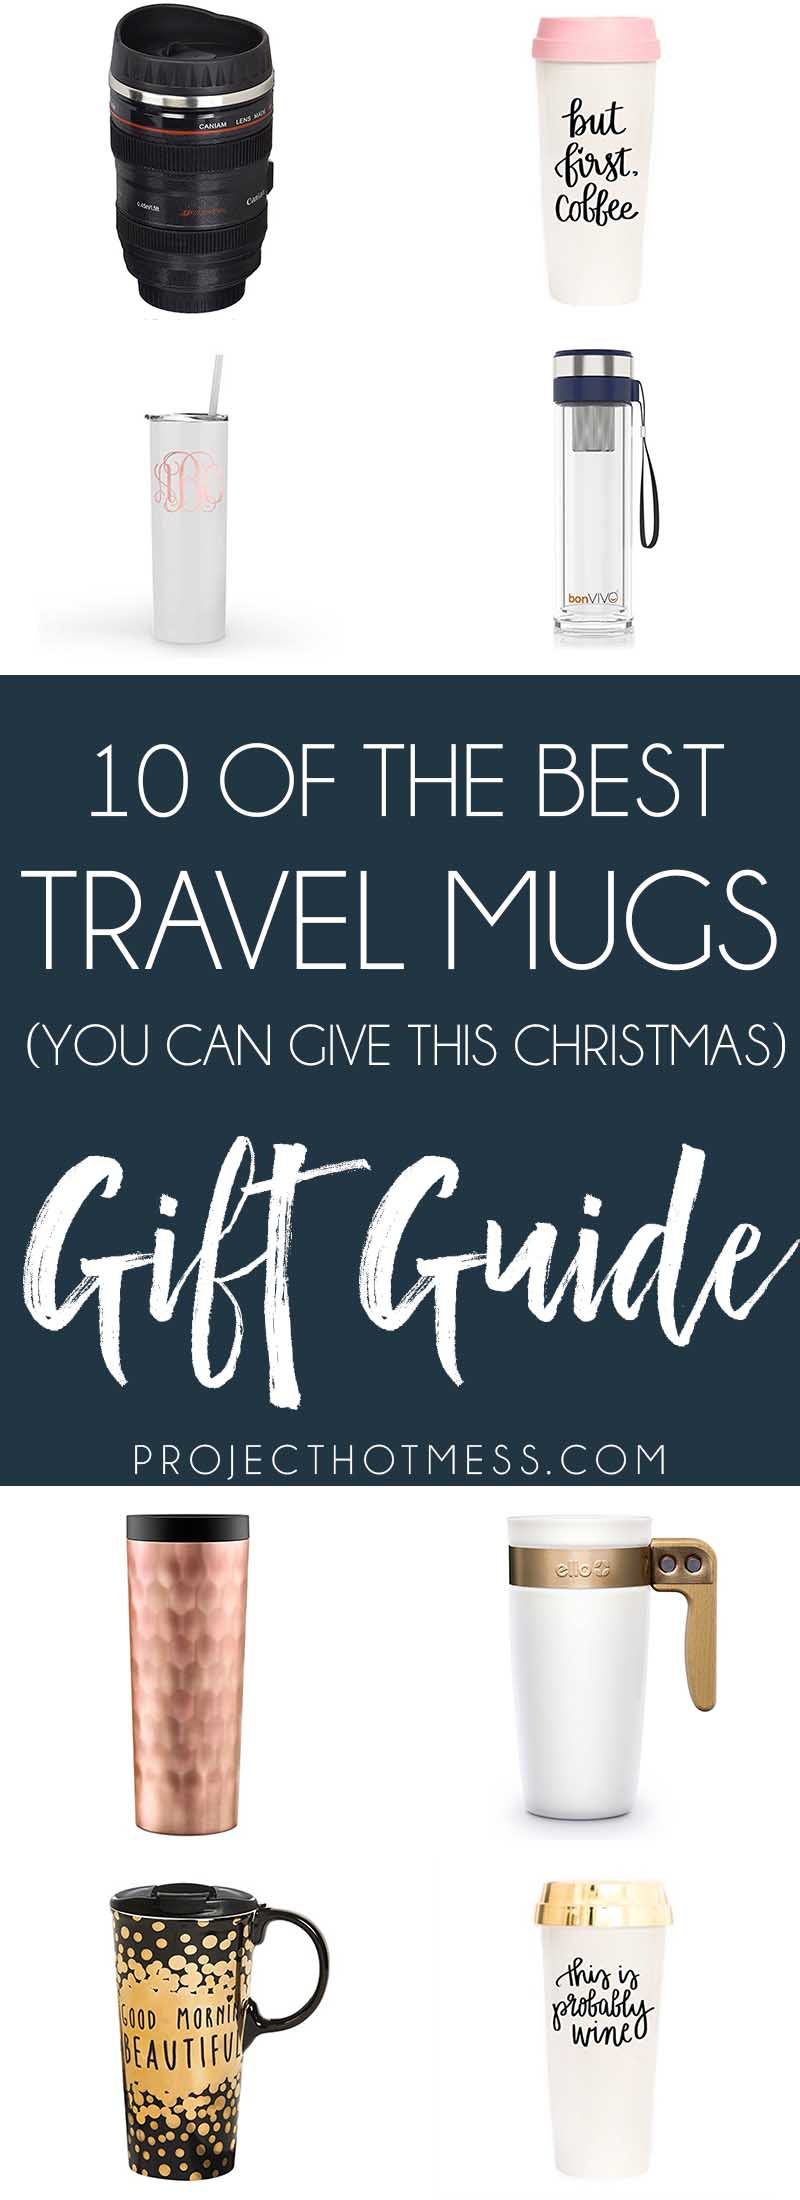 Travel mugs are brilliant gift ideas and just about everyone needs one! These are the best travel mugs we could find and there's a style to suit everyone. #travelmugs #giftideas #uniquegifts #coffeetravelmugs #besttravelmugs